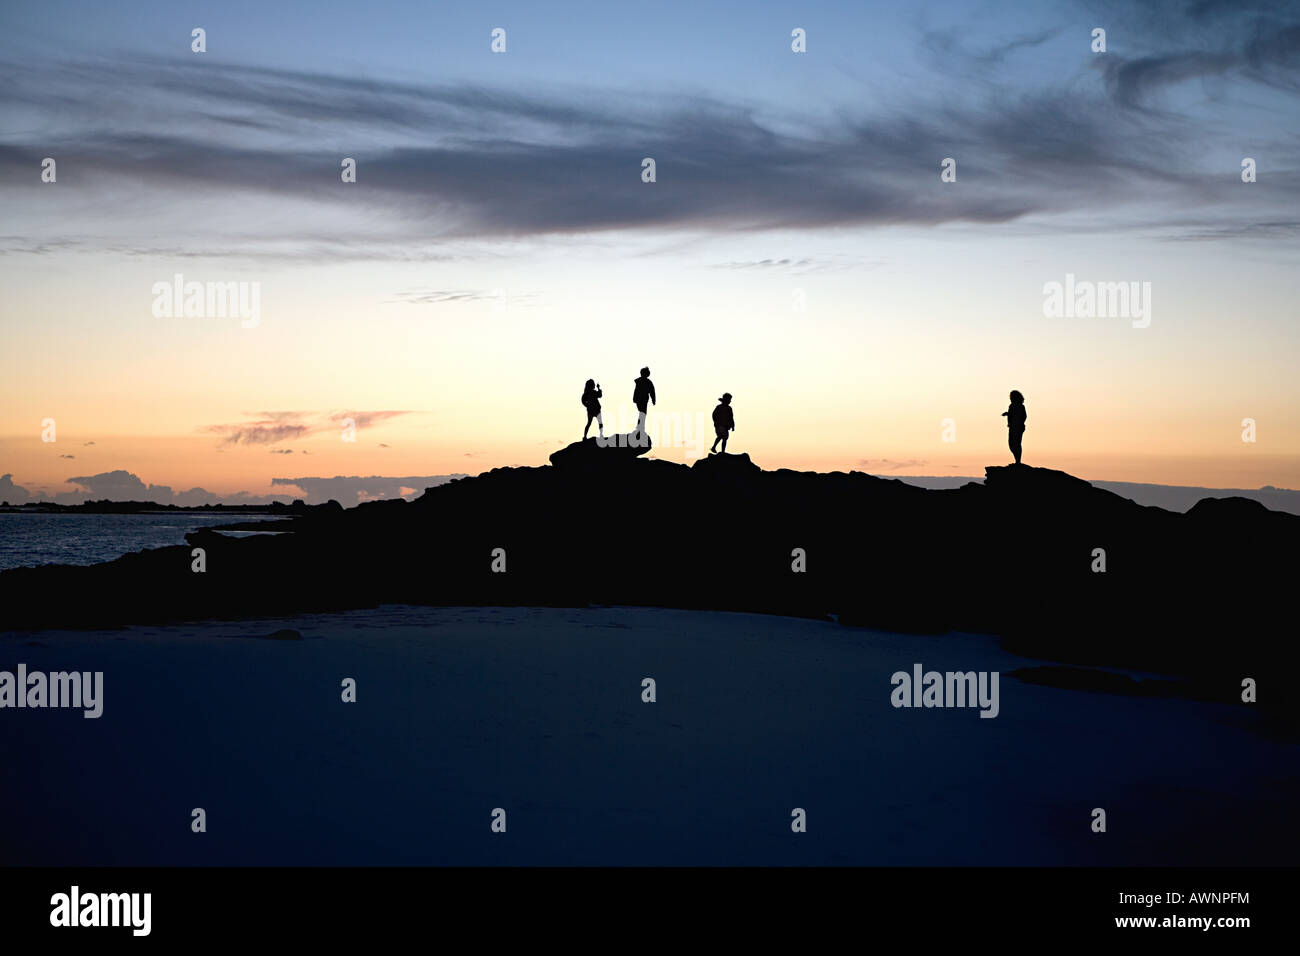 Silhouetted people on rocks - Stock Image